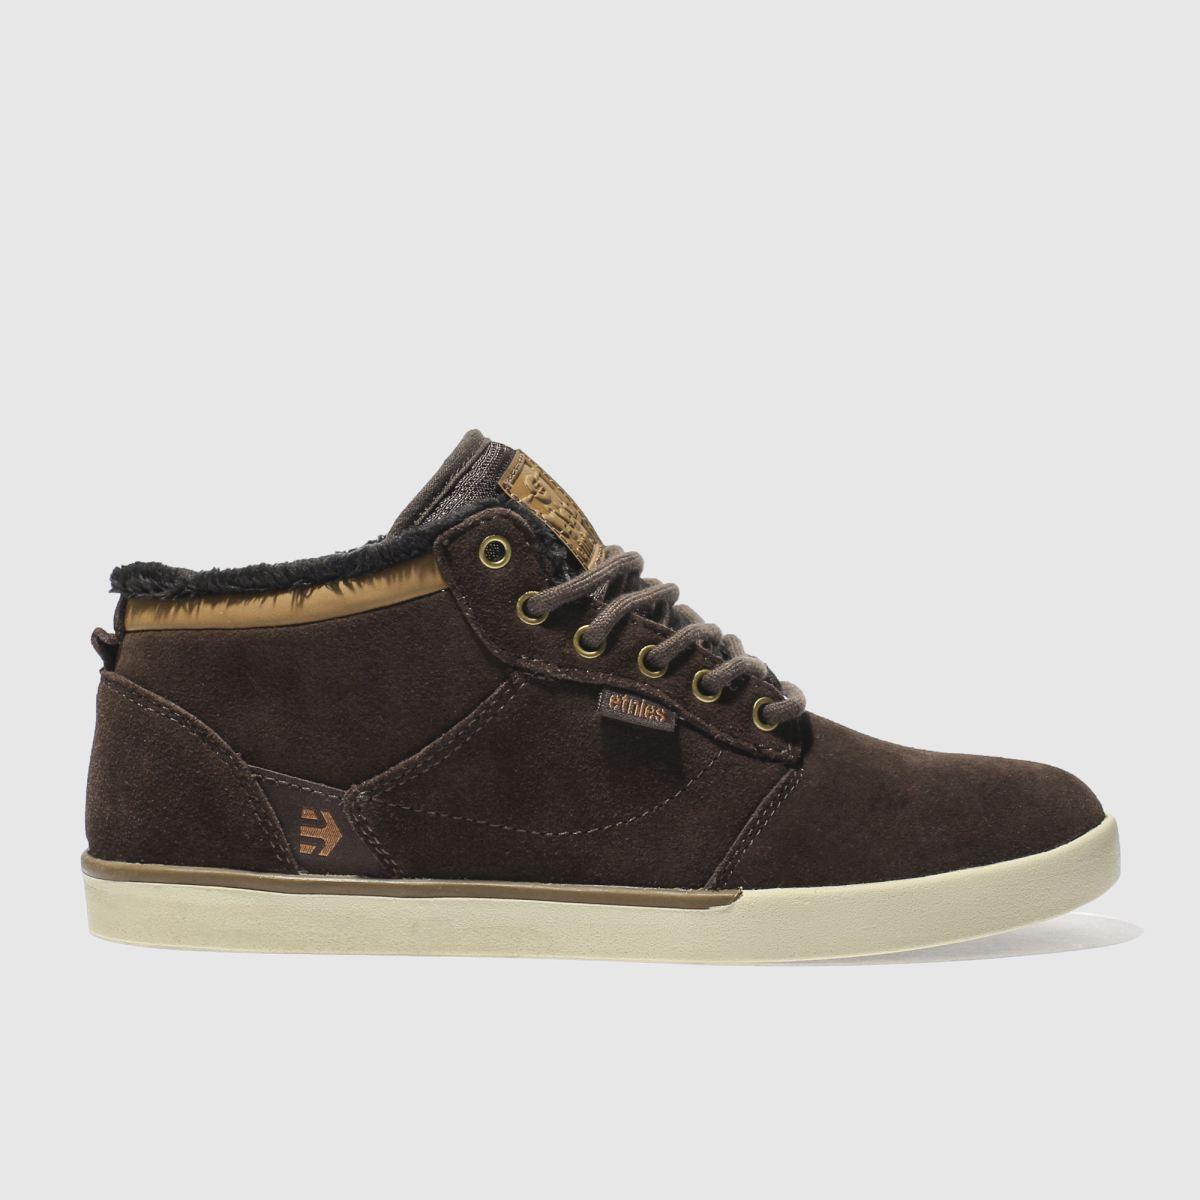 Etnies Etnies Brown Jefferson Mid Trainers